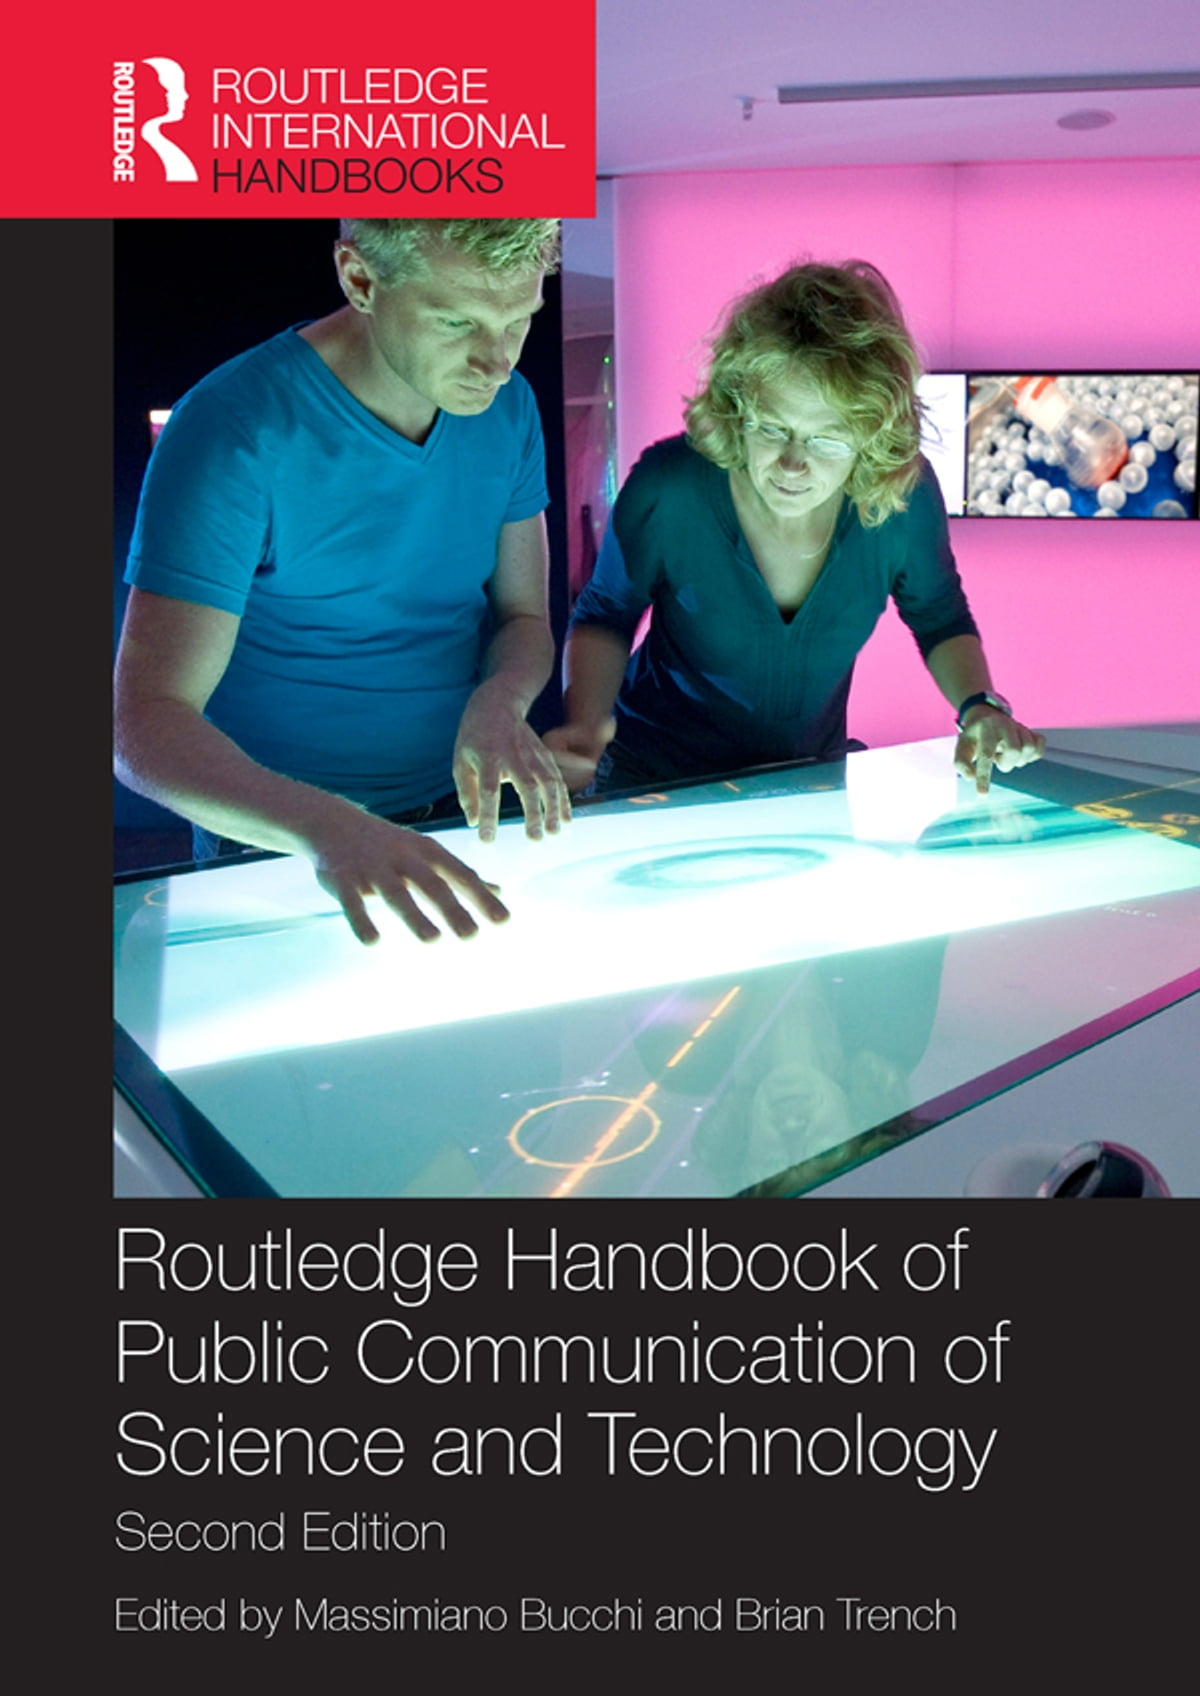 Science in society ebook by massimiano bucchi 9781134354863 routledge handbook of public communication of science and technology second edition ebook by massimiano bucchi fandeluxe Image collections